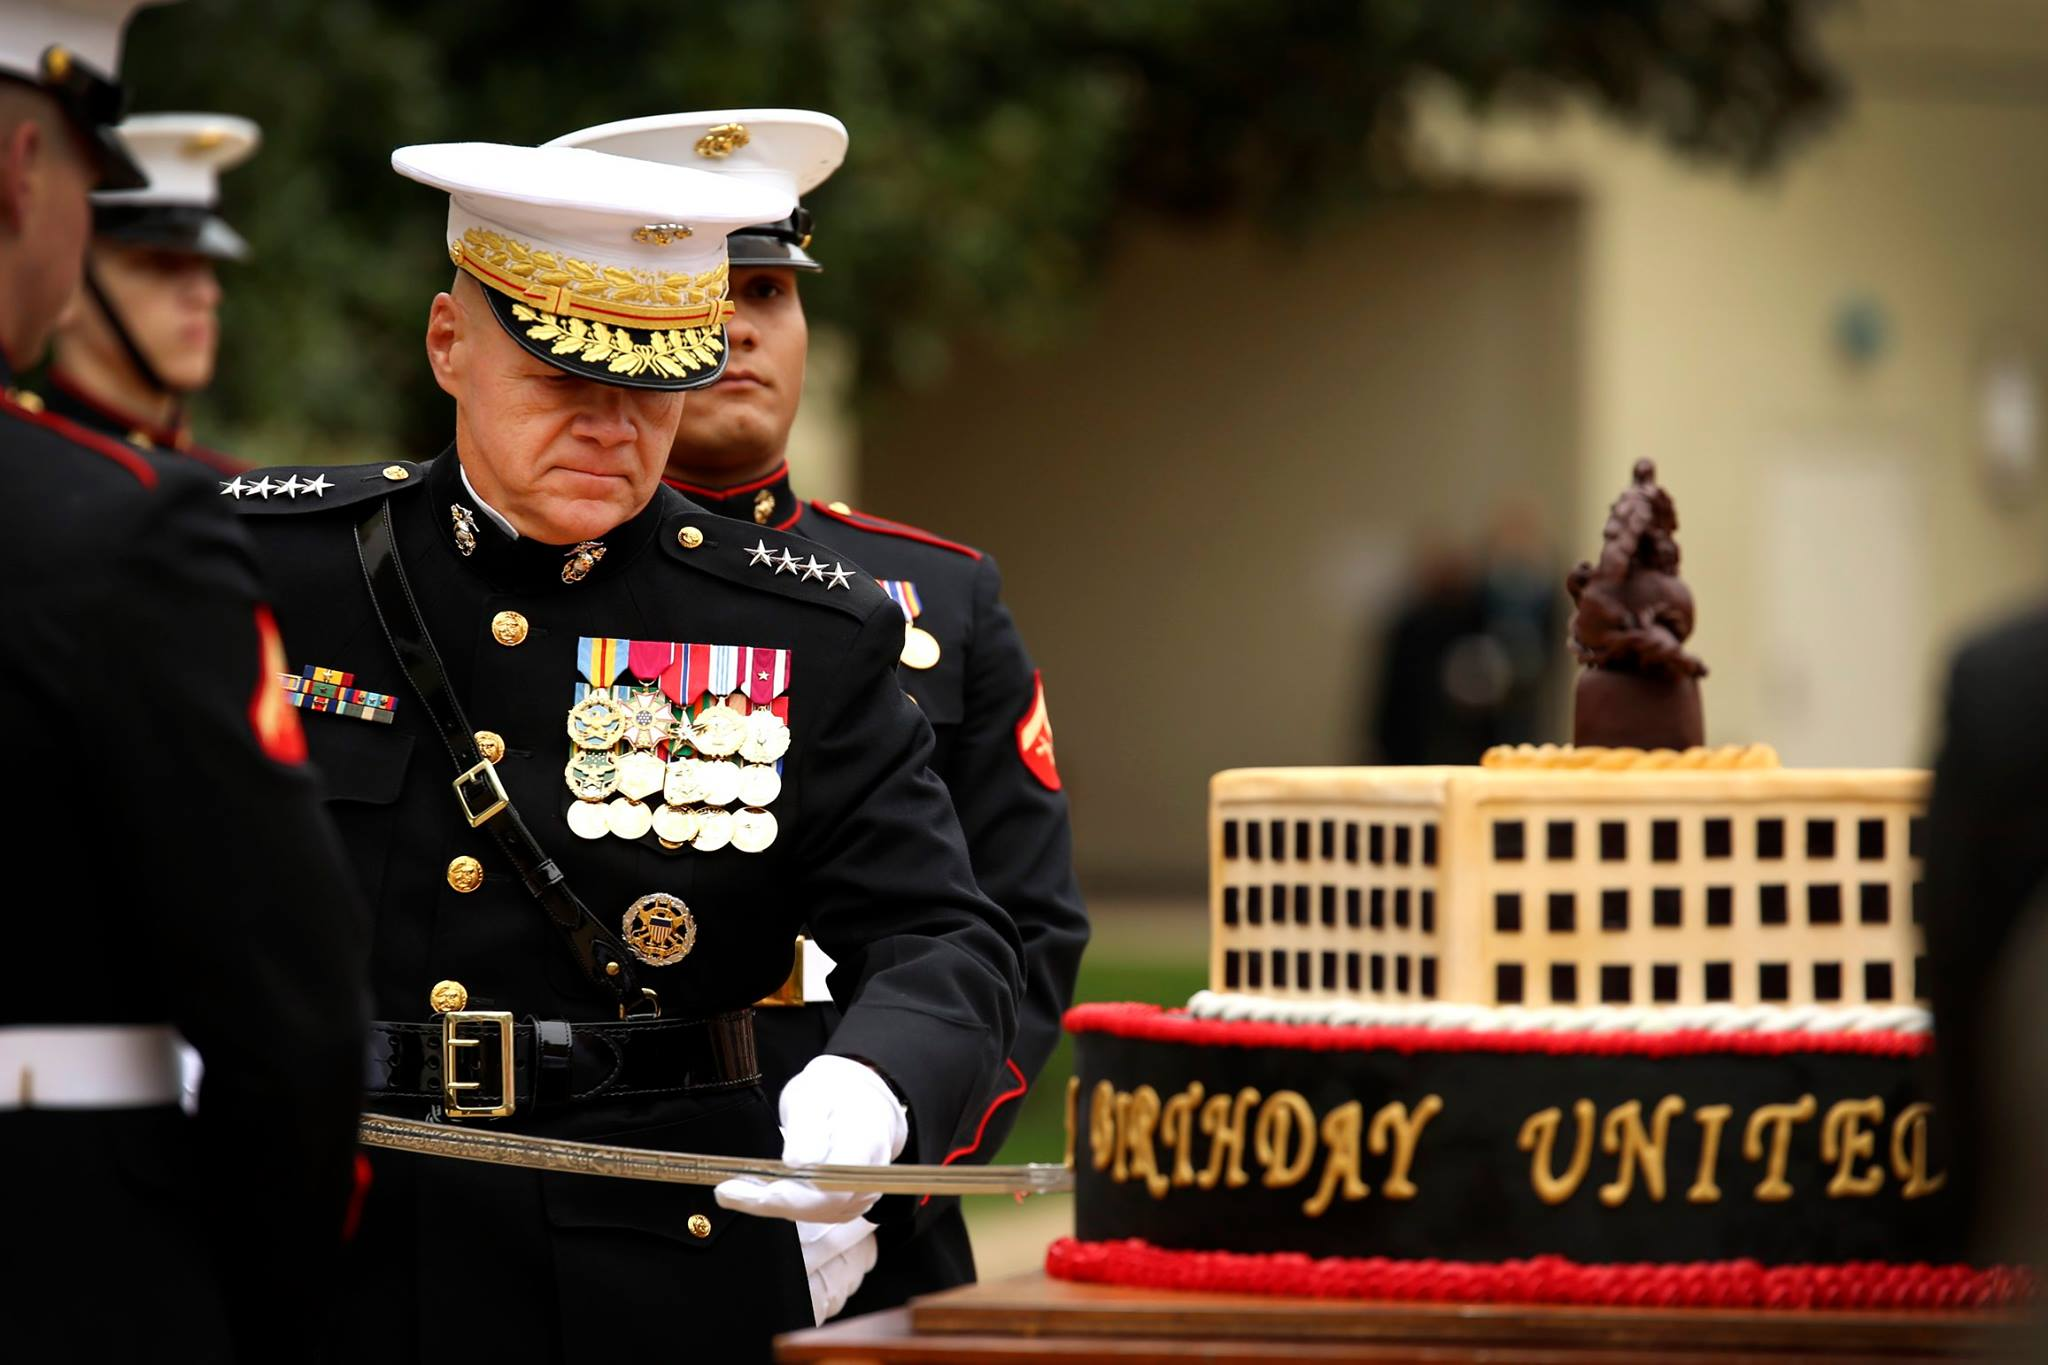 United States Marine Corps Celebrates 240th Birthday Wtop